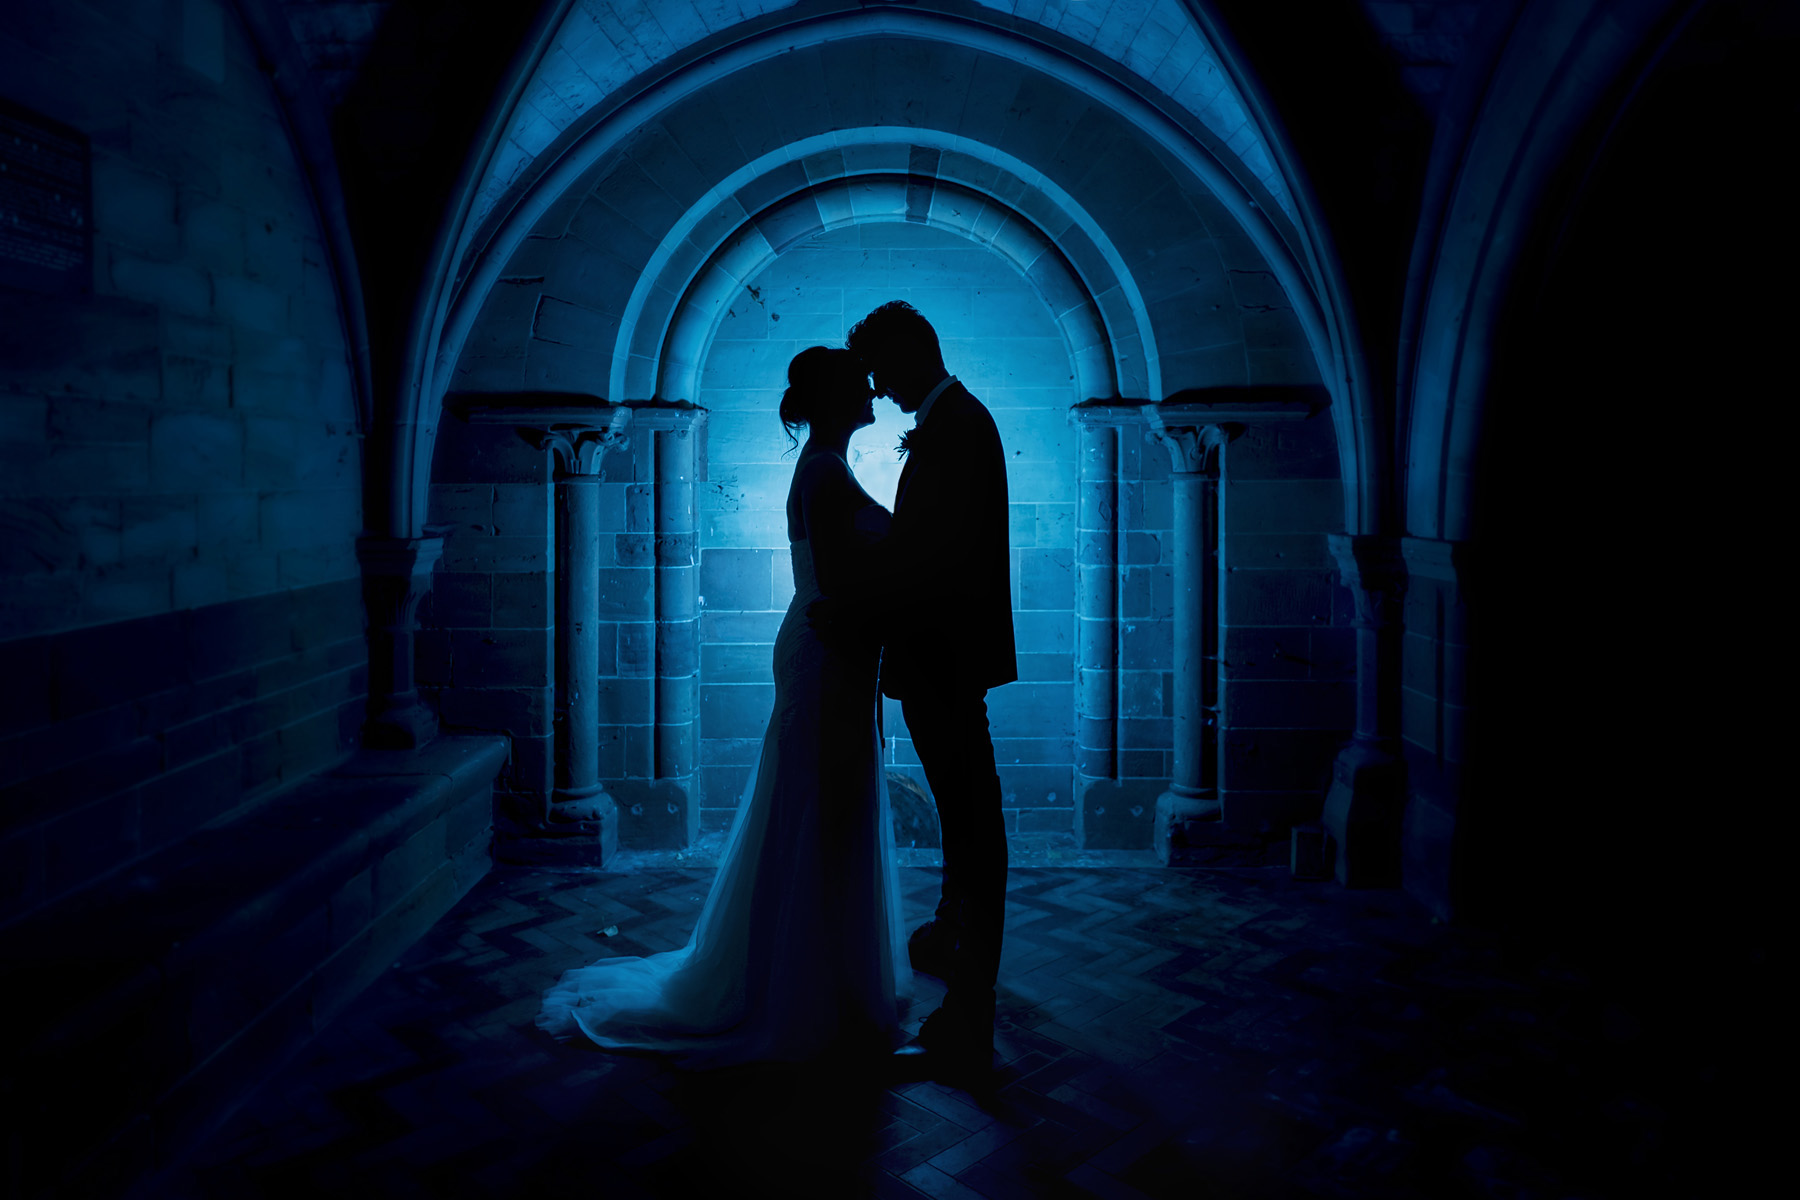 Coombe abbey wedding photography; bride and groom night silhouette portrait in front of arch on their wedding day